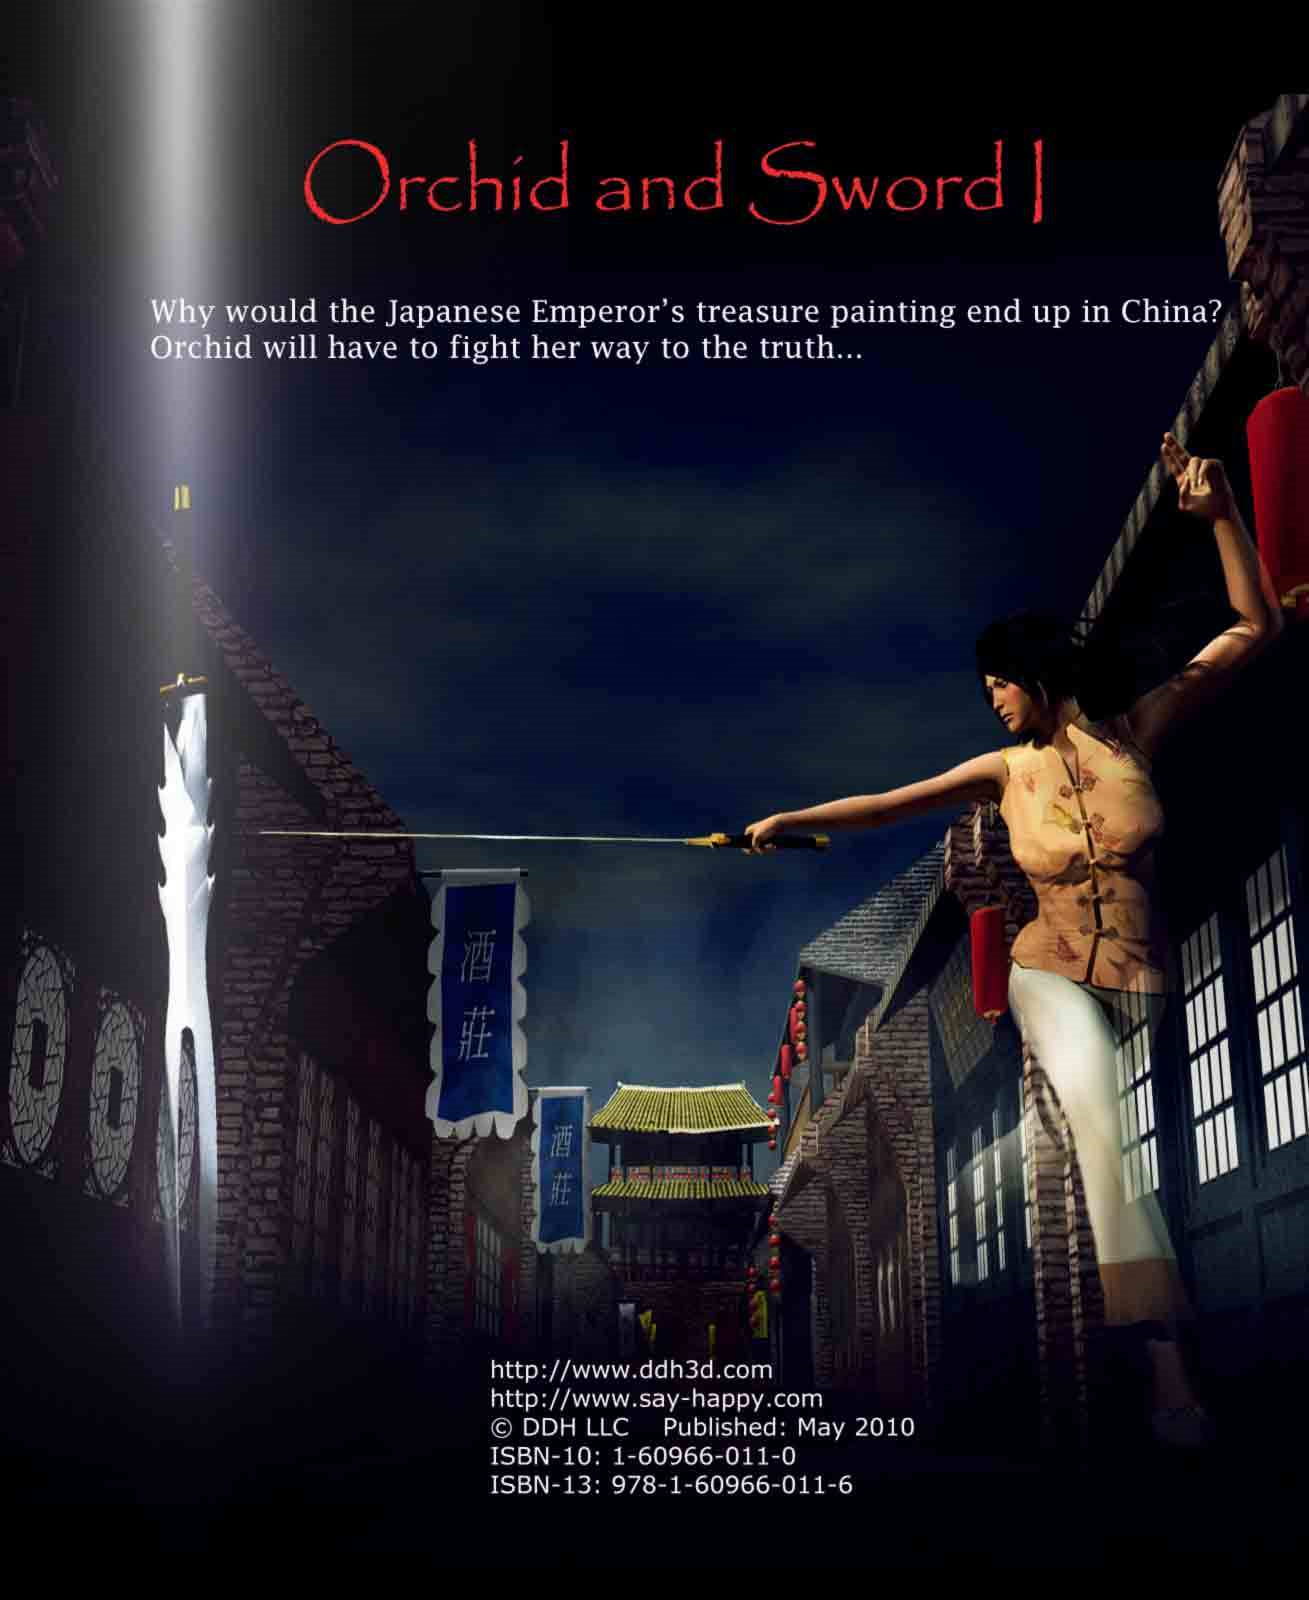 Orchid and Sword, Episode 1